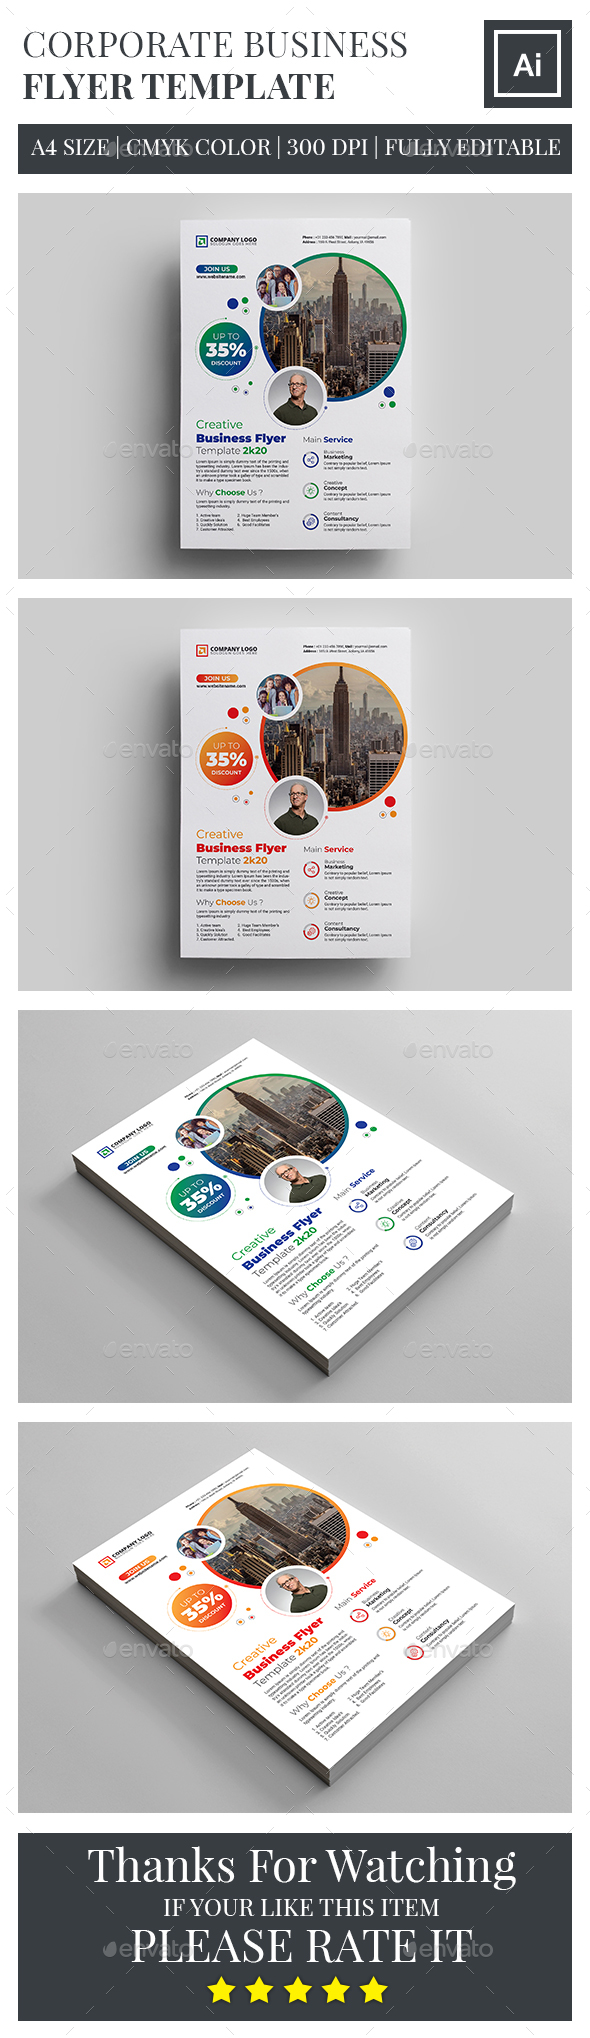 Business flyer templates from graphicriver friedricerecipe Choice Image